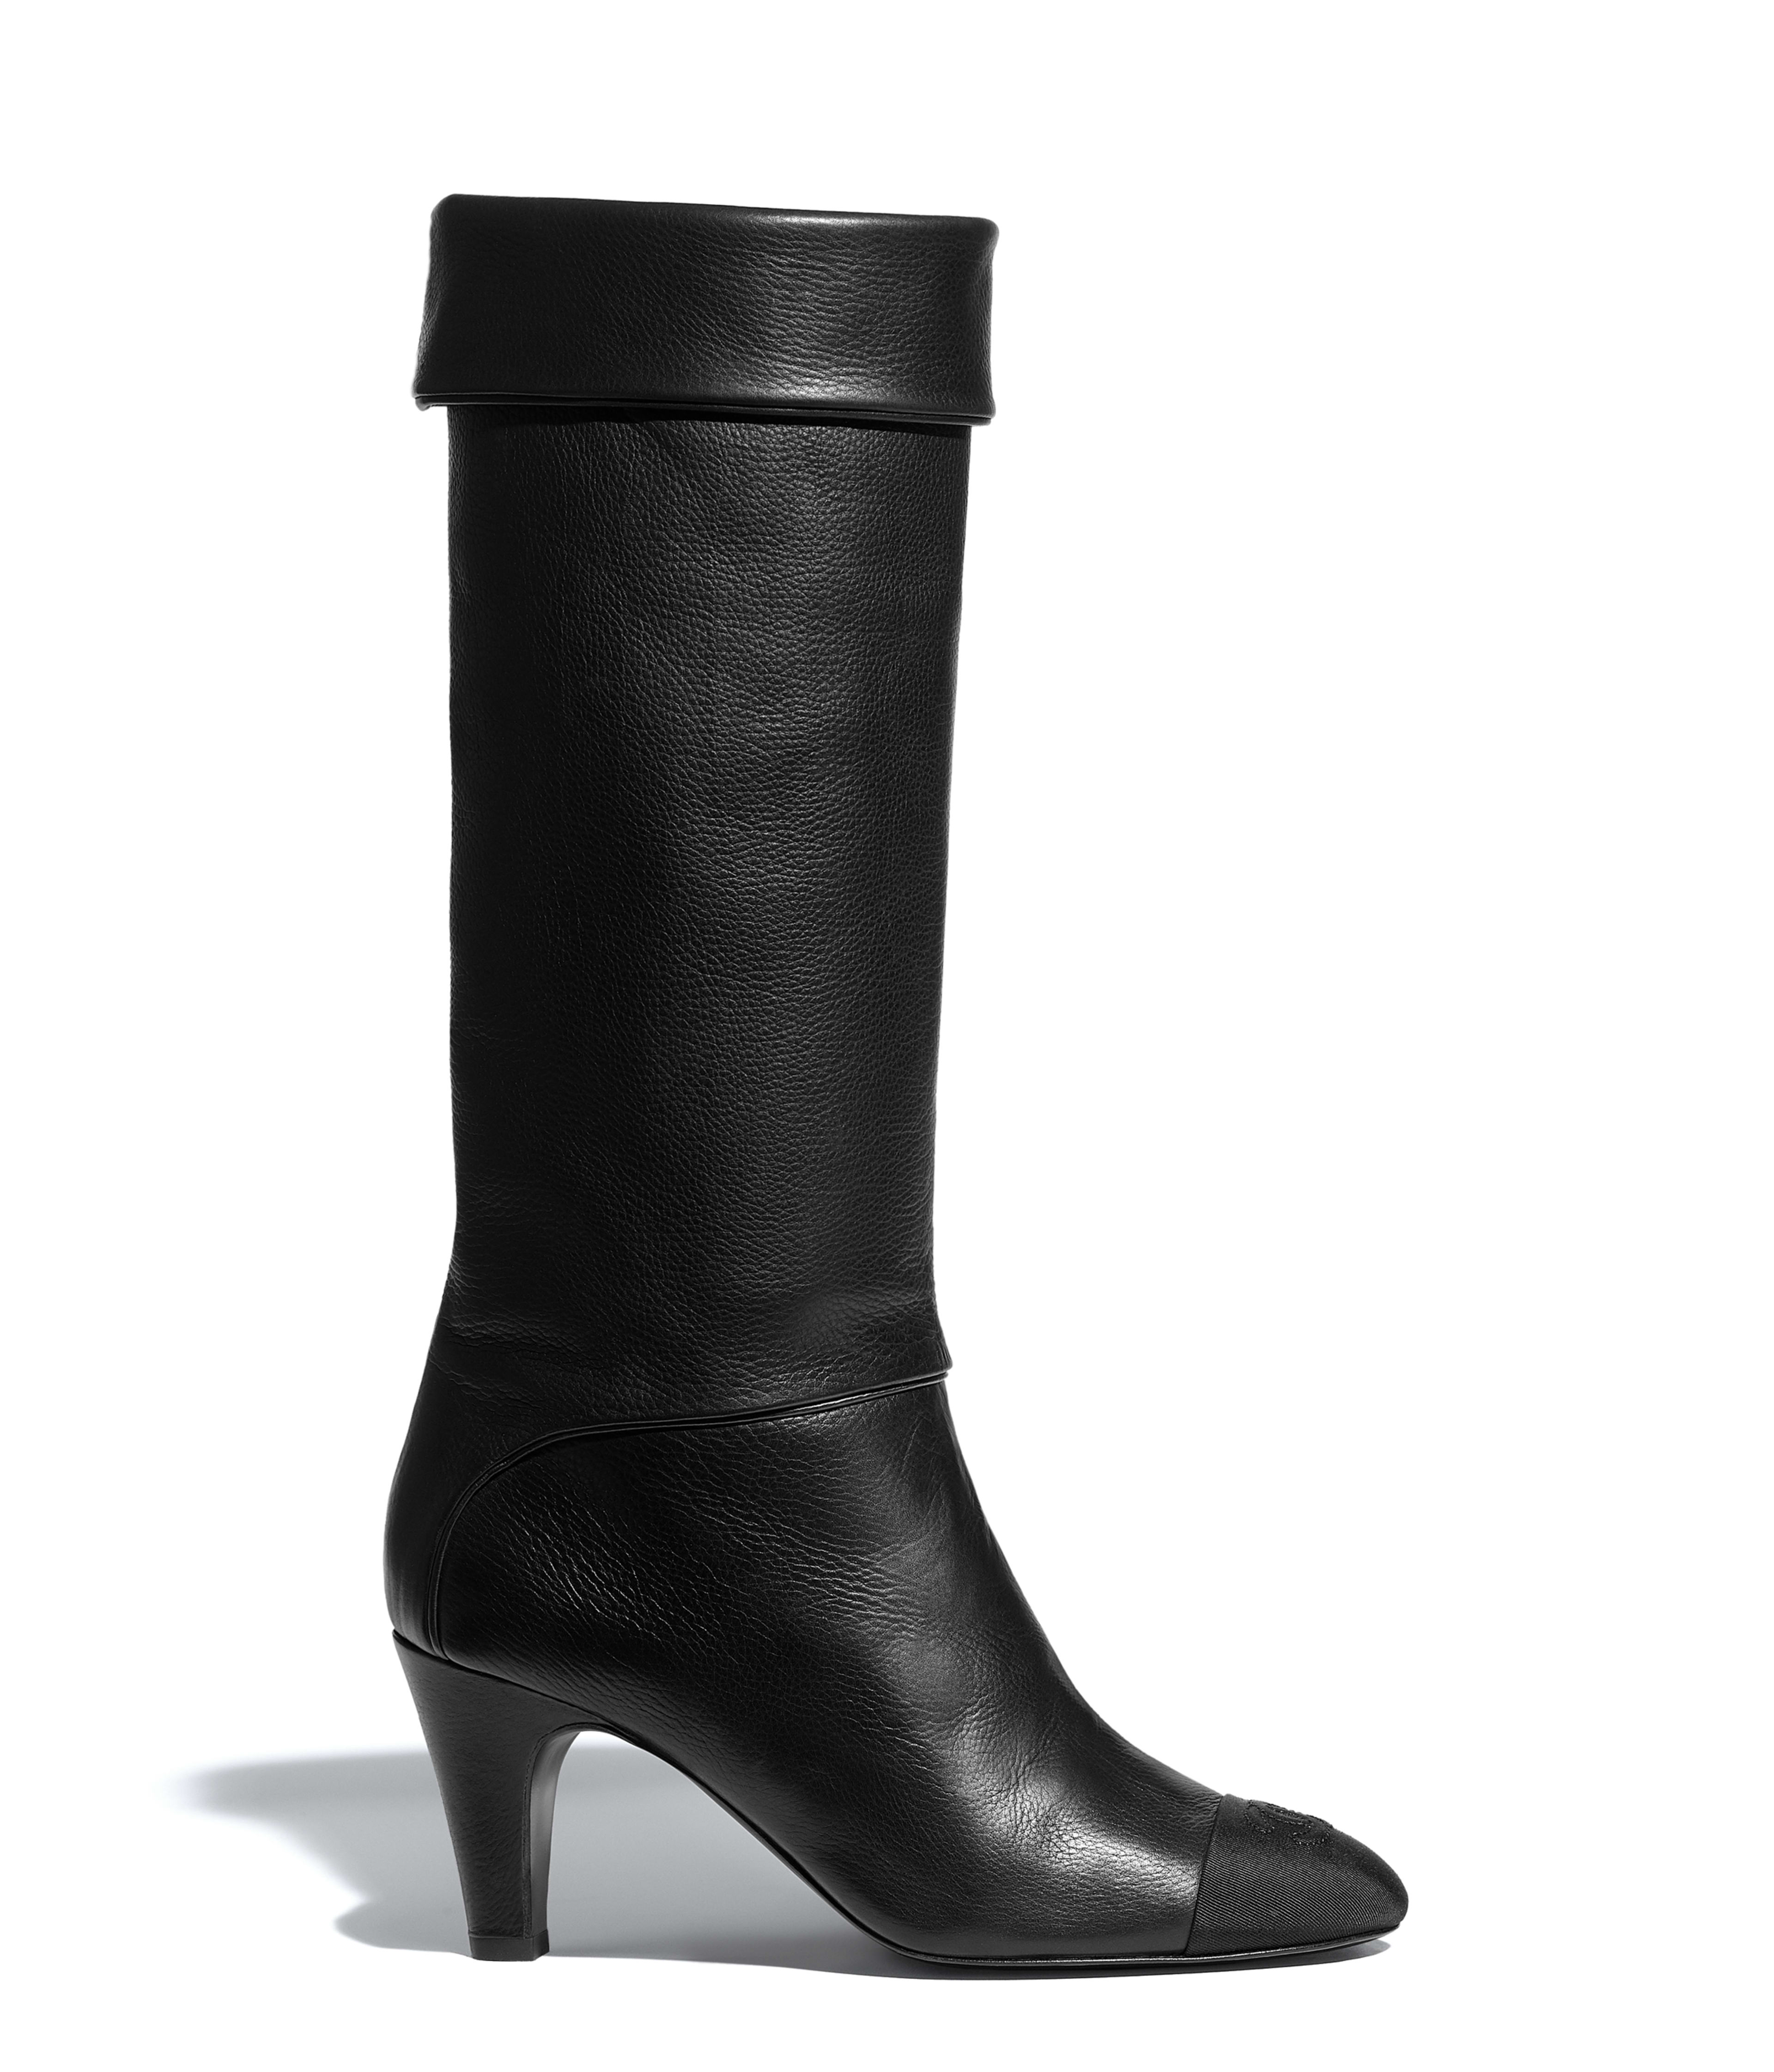 High Boots - Shoes | CHANEL